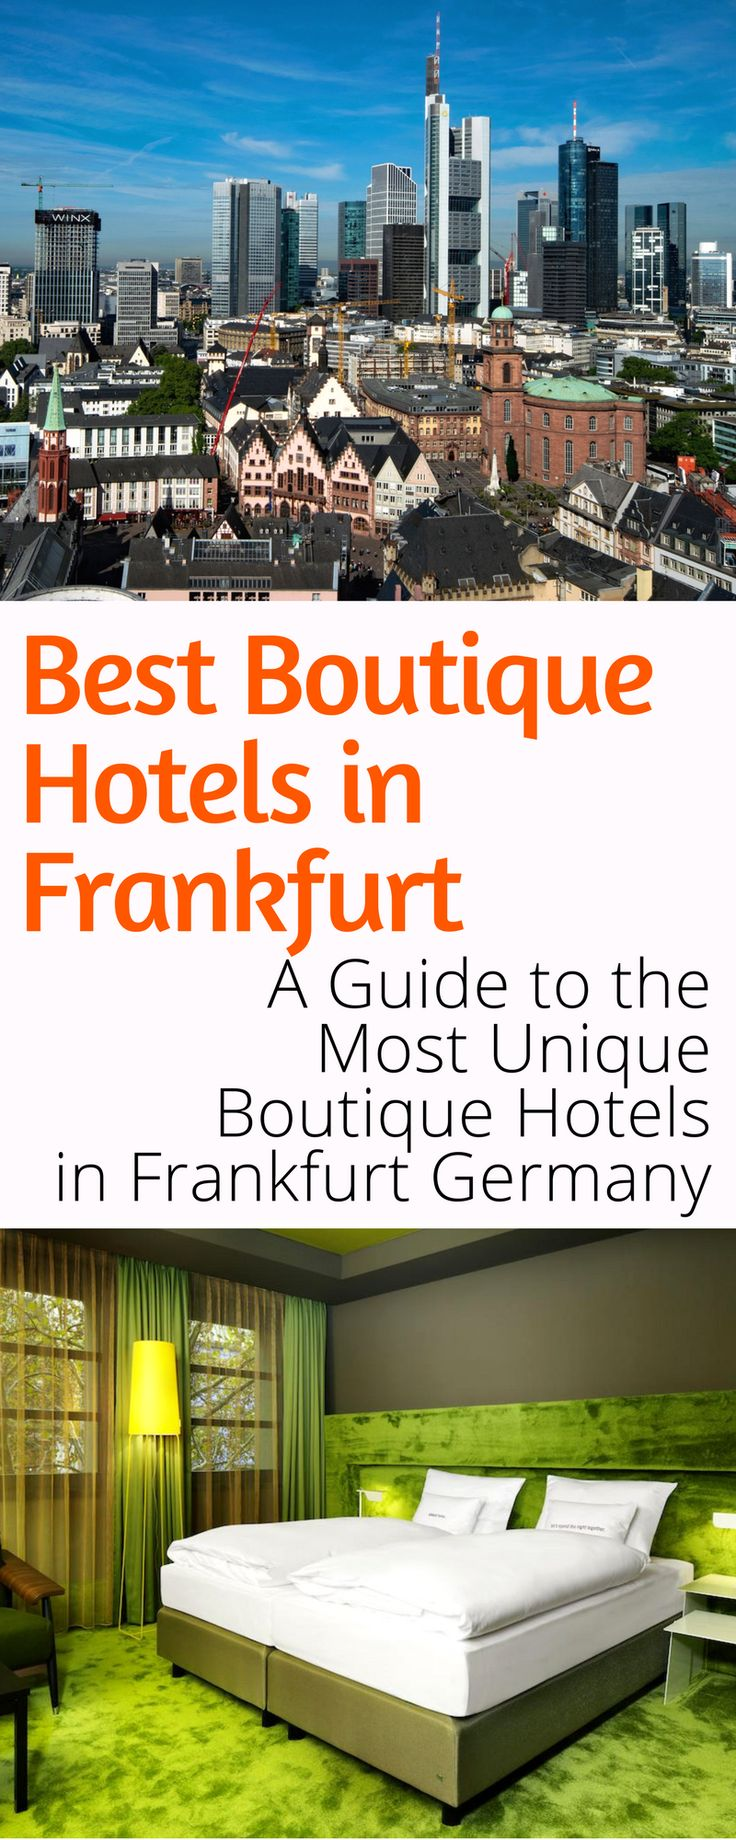 Best Boutique Hotels in Frankfurt: Frankfurt Germany is filled with amazing hotels. Here is your guide to the best boutique and design hotels Frankfurt has to offer! Click here to discover where to pamper yourself in Frankfurt.